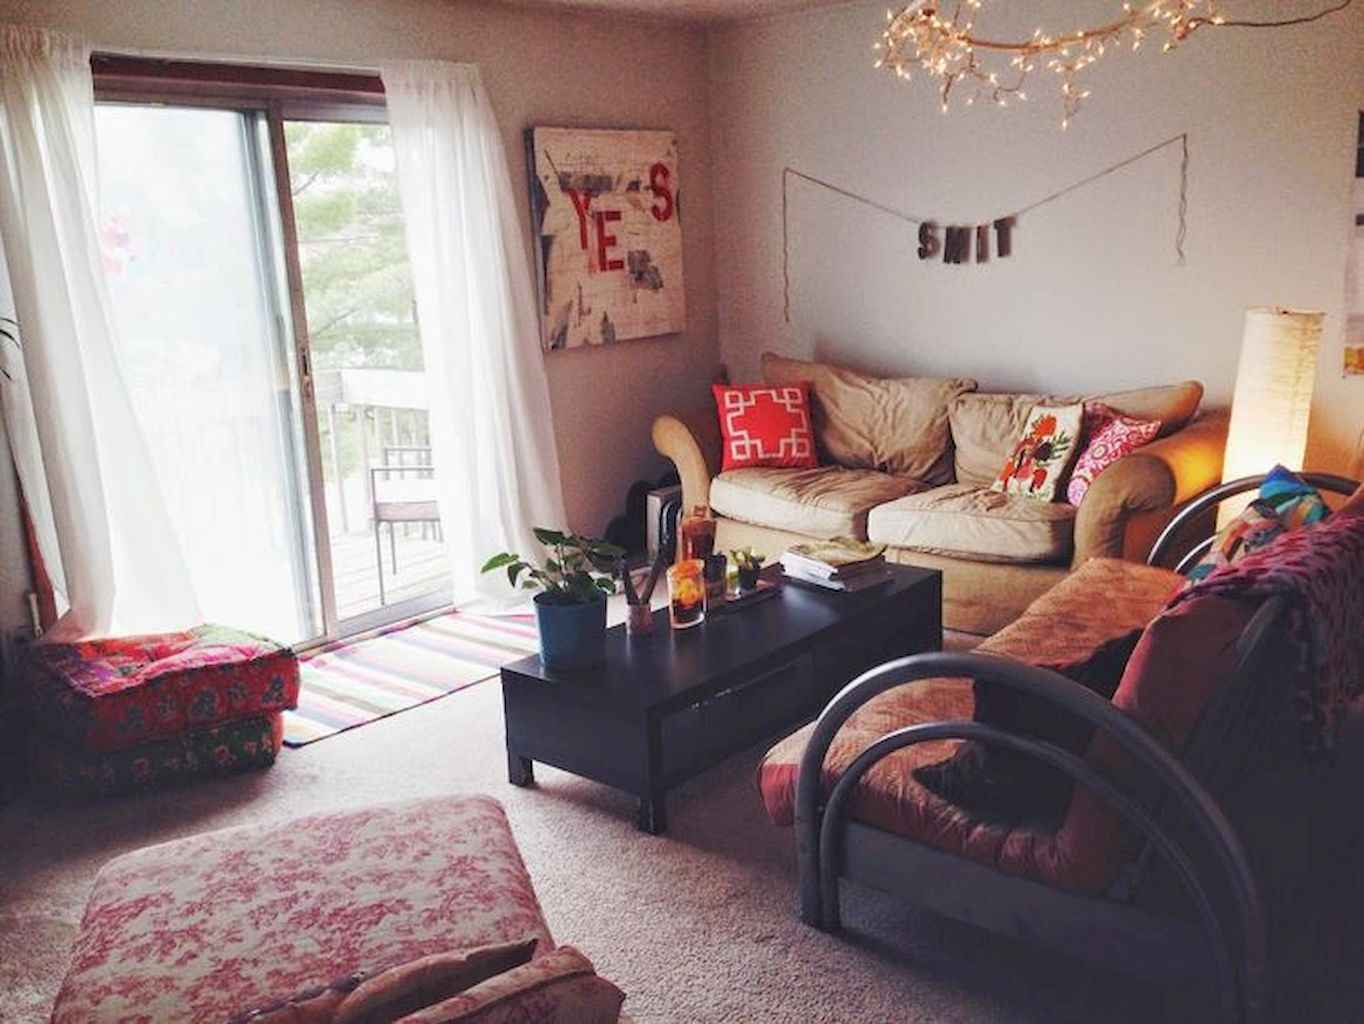 Cozy apartment decorating ideas on a budget (60)